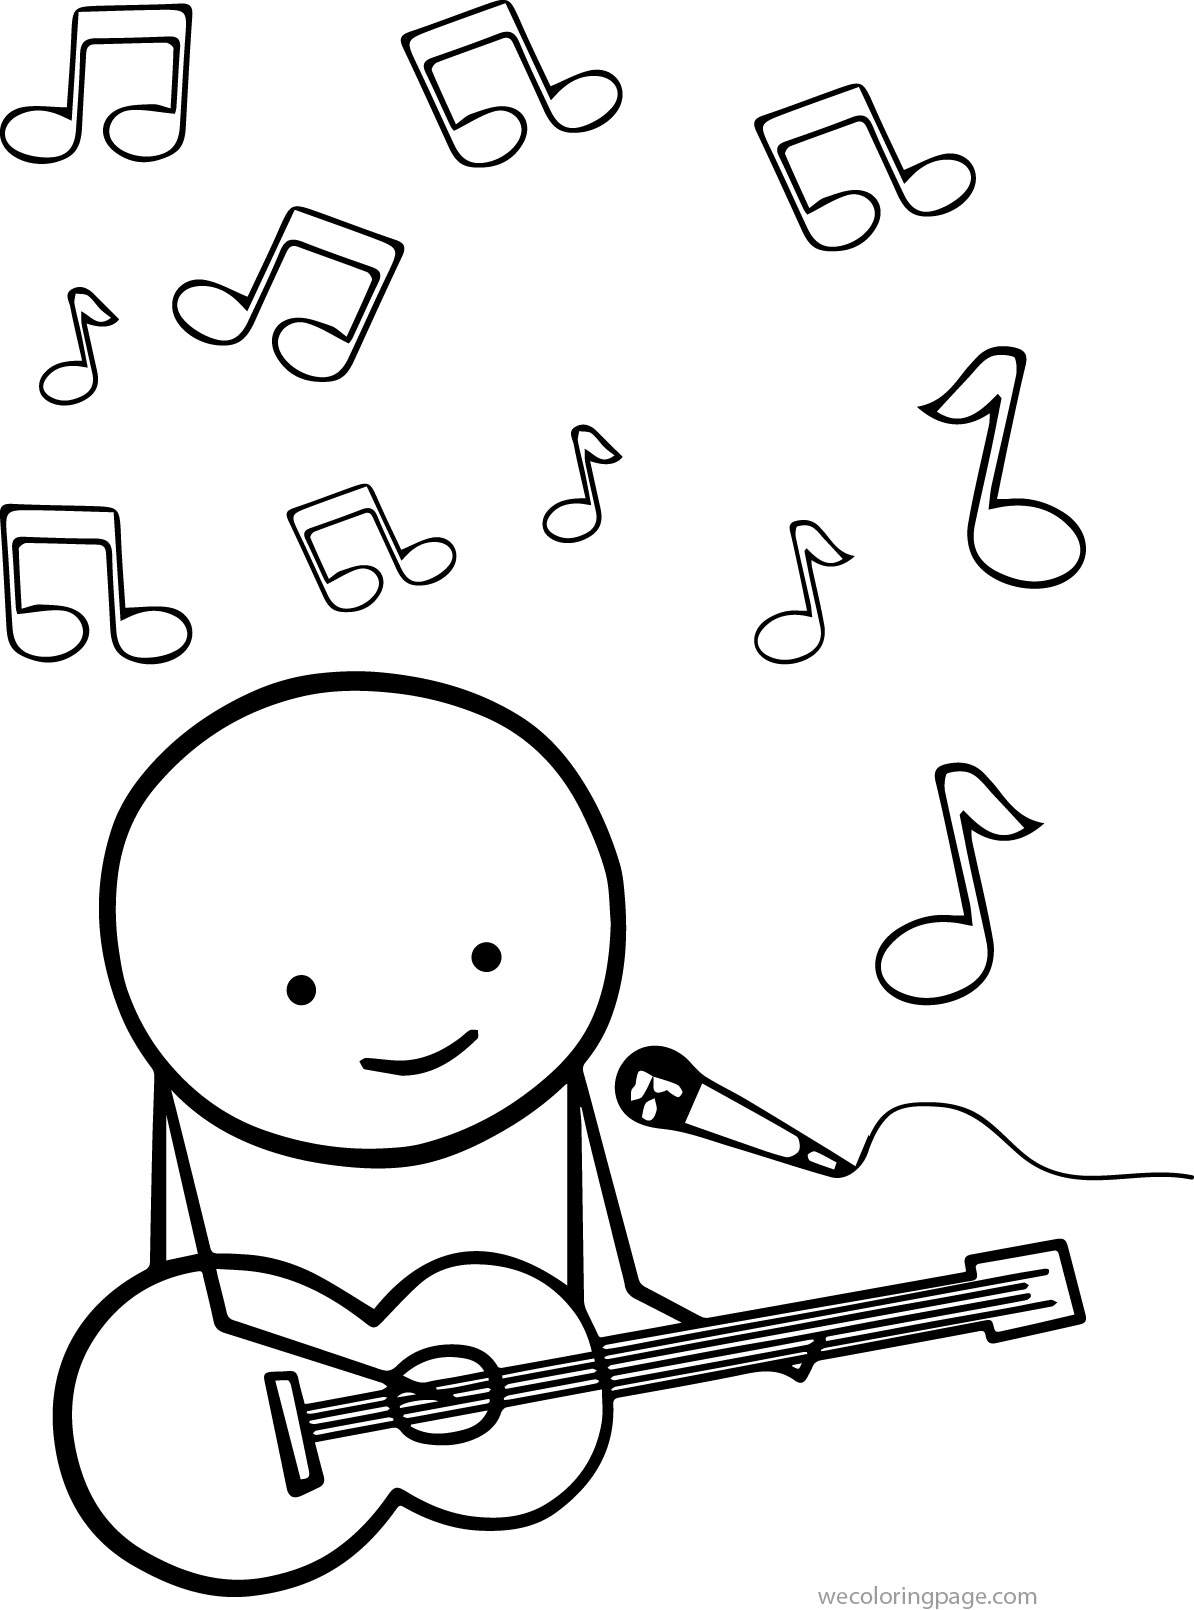 Guitar Play Man Coloring Page